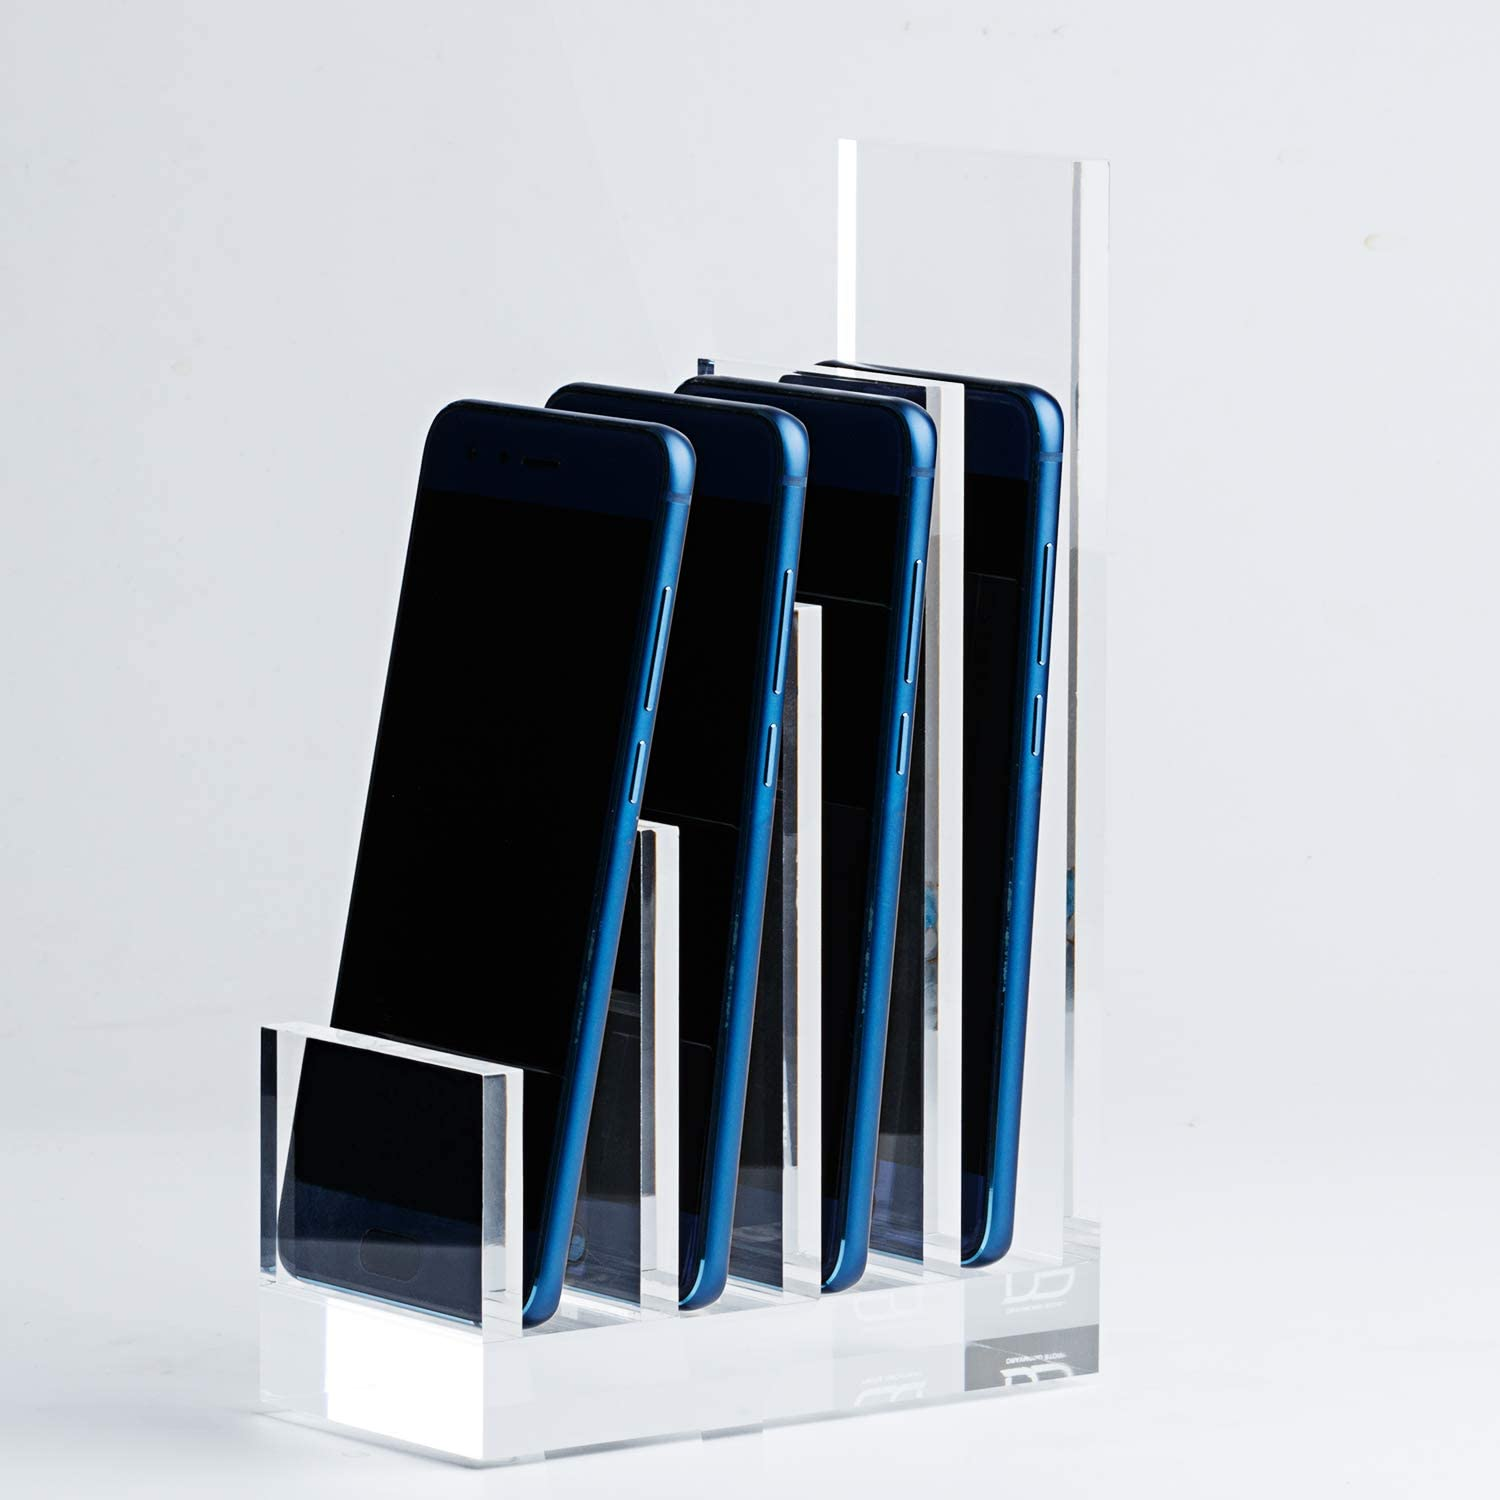 Acrylic Clear Vertical File Organizer 13 New York Mall Compa 4 35% OFF Slot 16